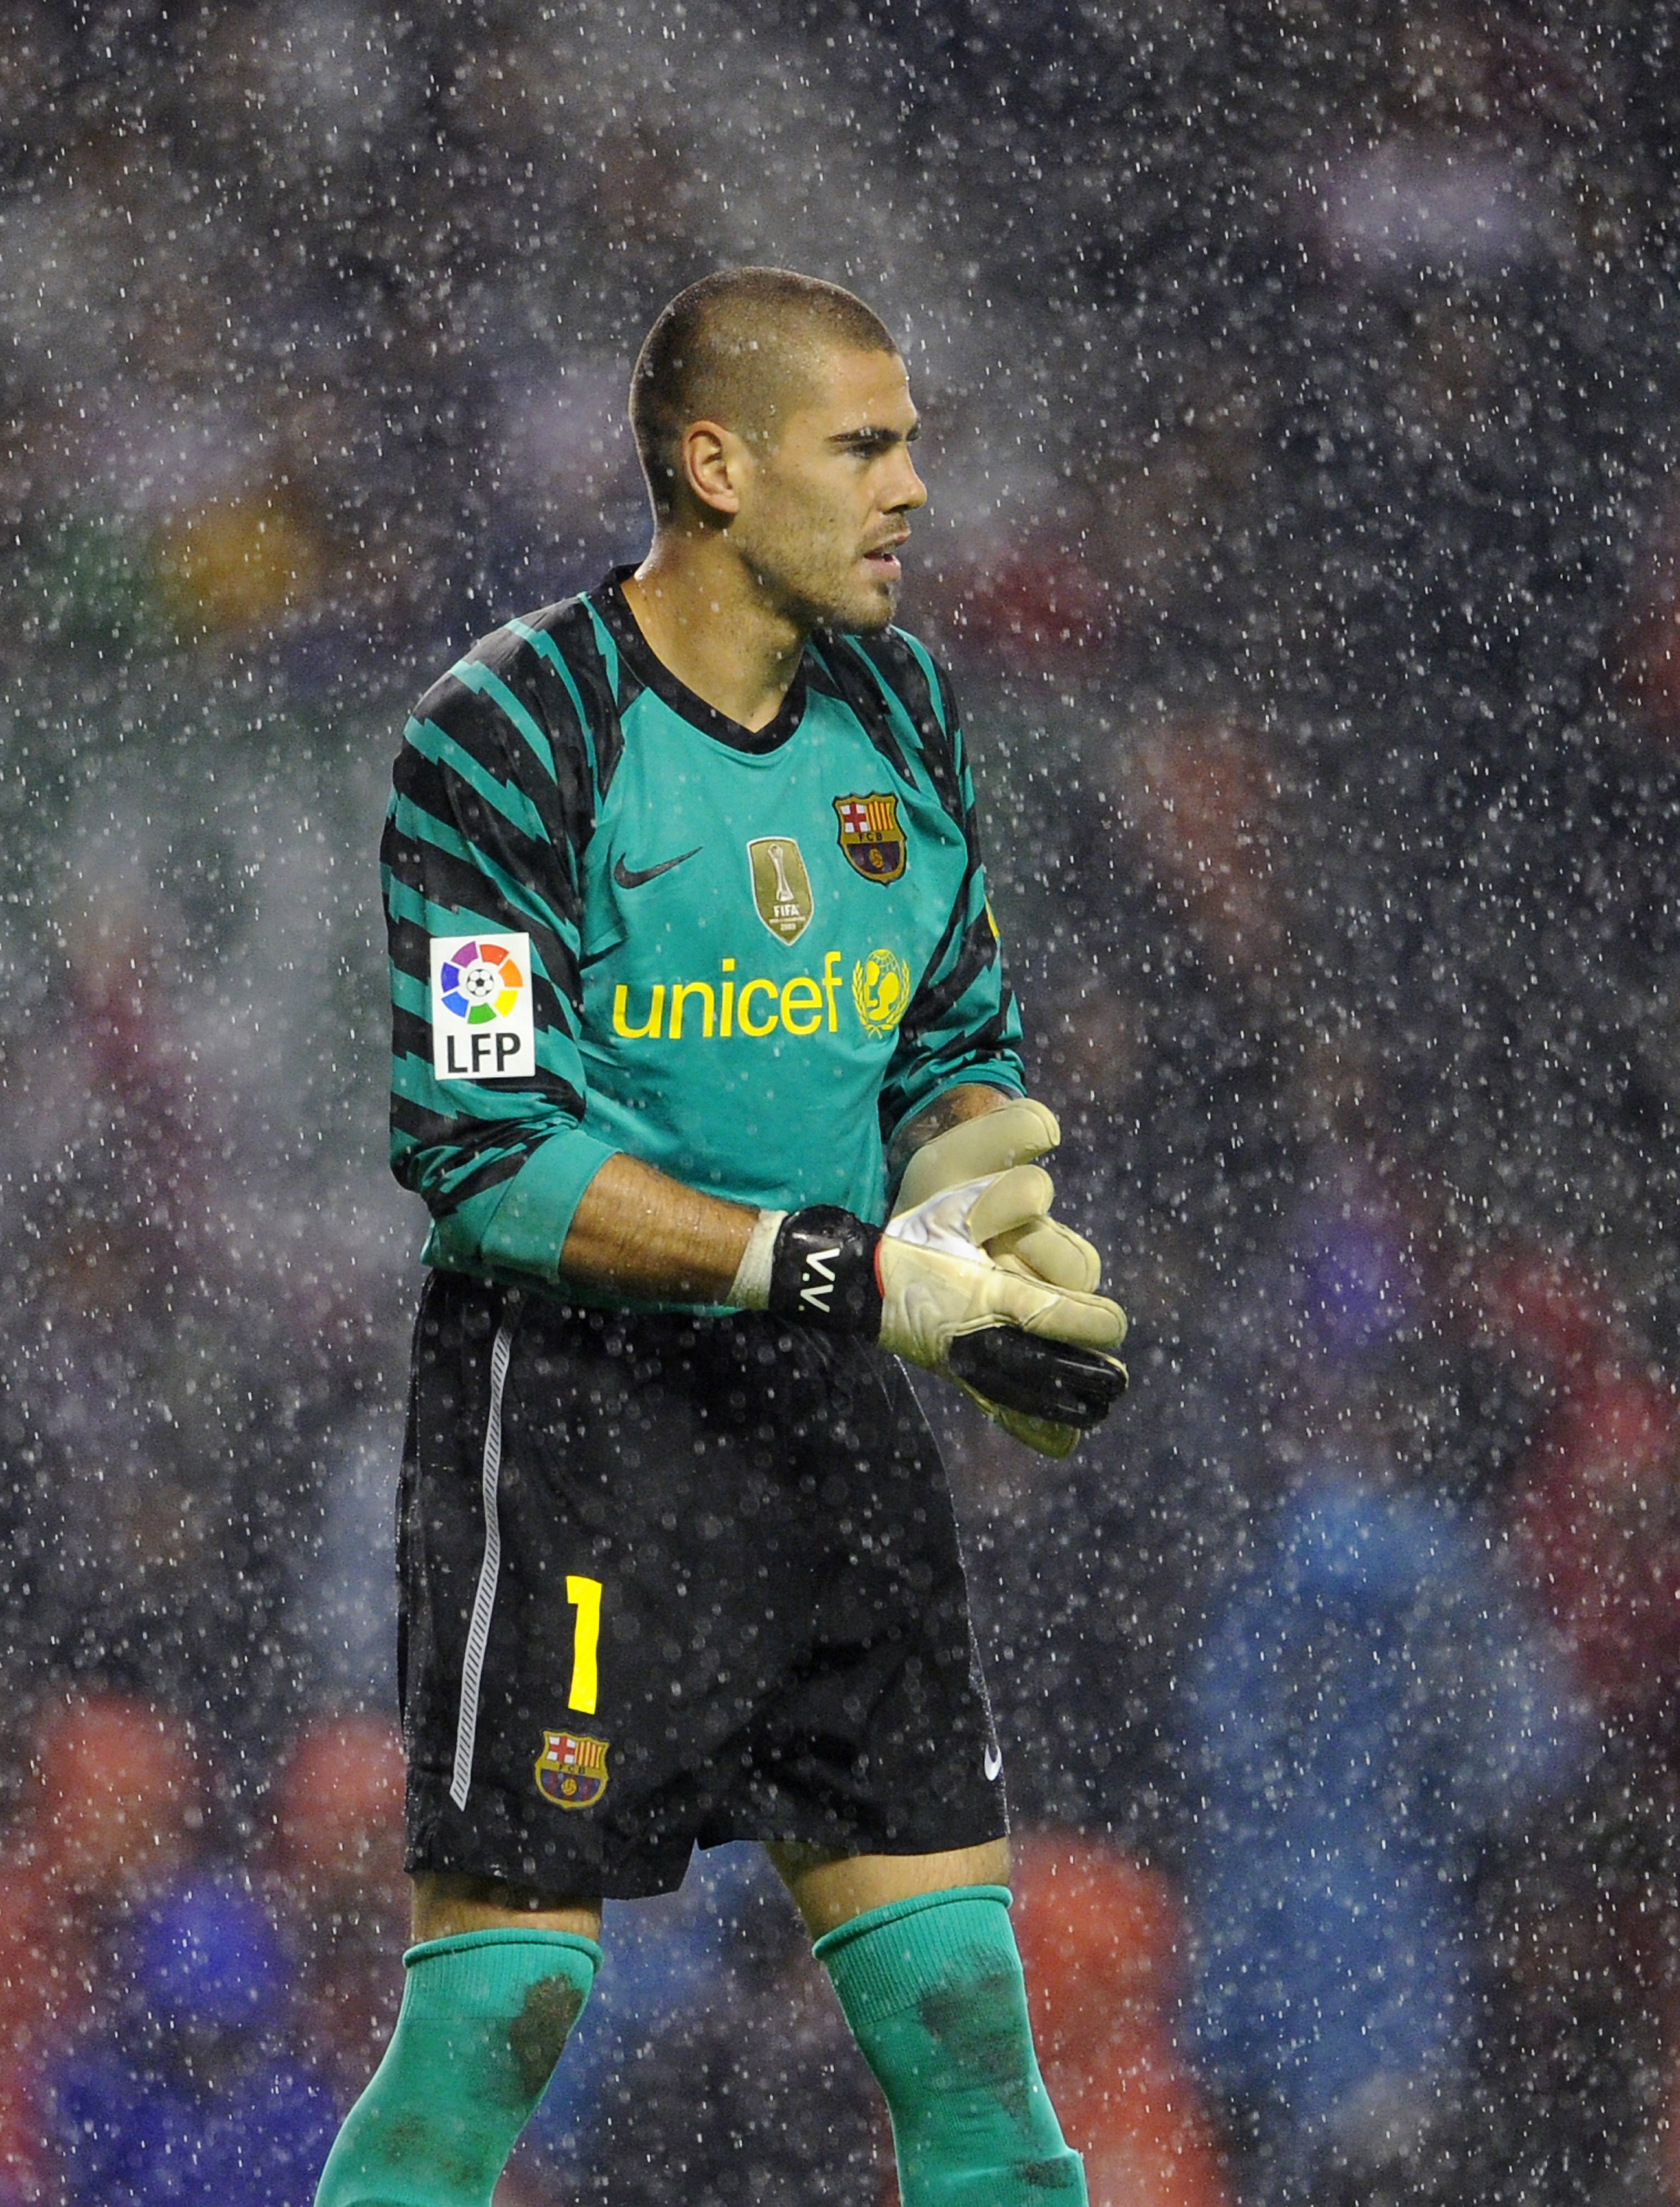 BILBAO, SPAIN - SEPTEMBER 25:  Goalkeeper Victor Valdes of Barcelona looks on during the La Liga match between Athletic Bilbao and Barcelona at the San Mames Stadium on September 25, 2010 in Bilbao, Spain. Barcelona won the match 3-1.  (Photo by Jasper Ju